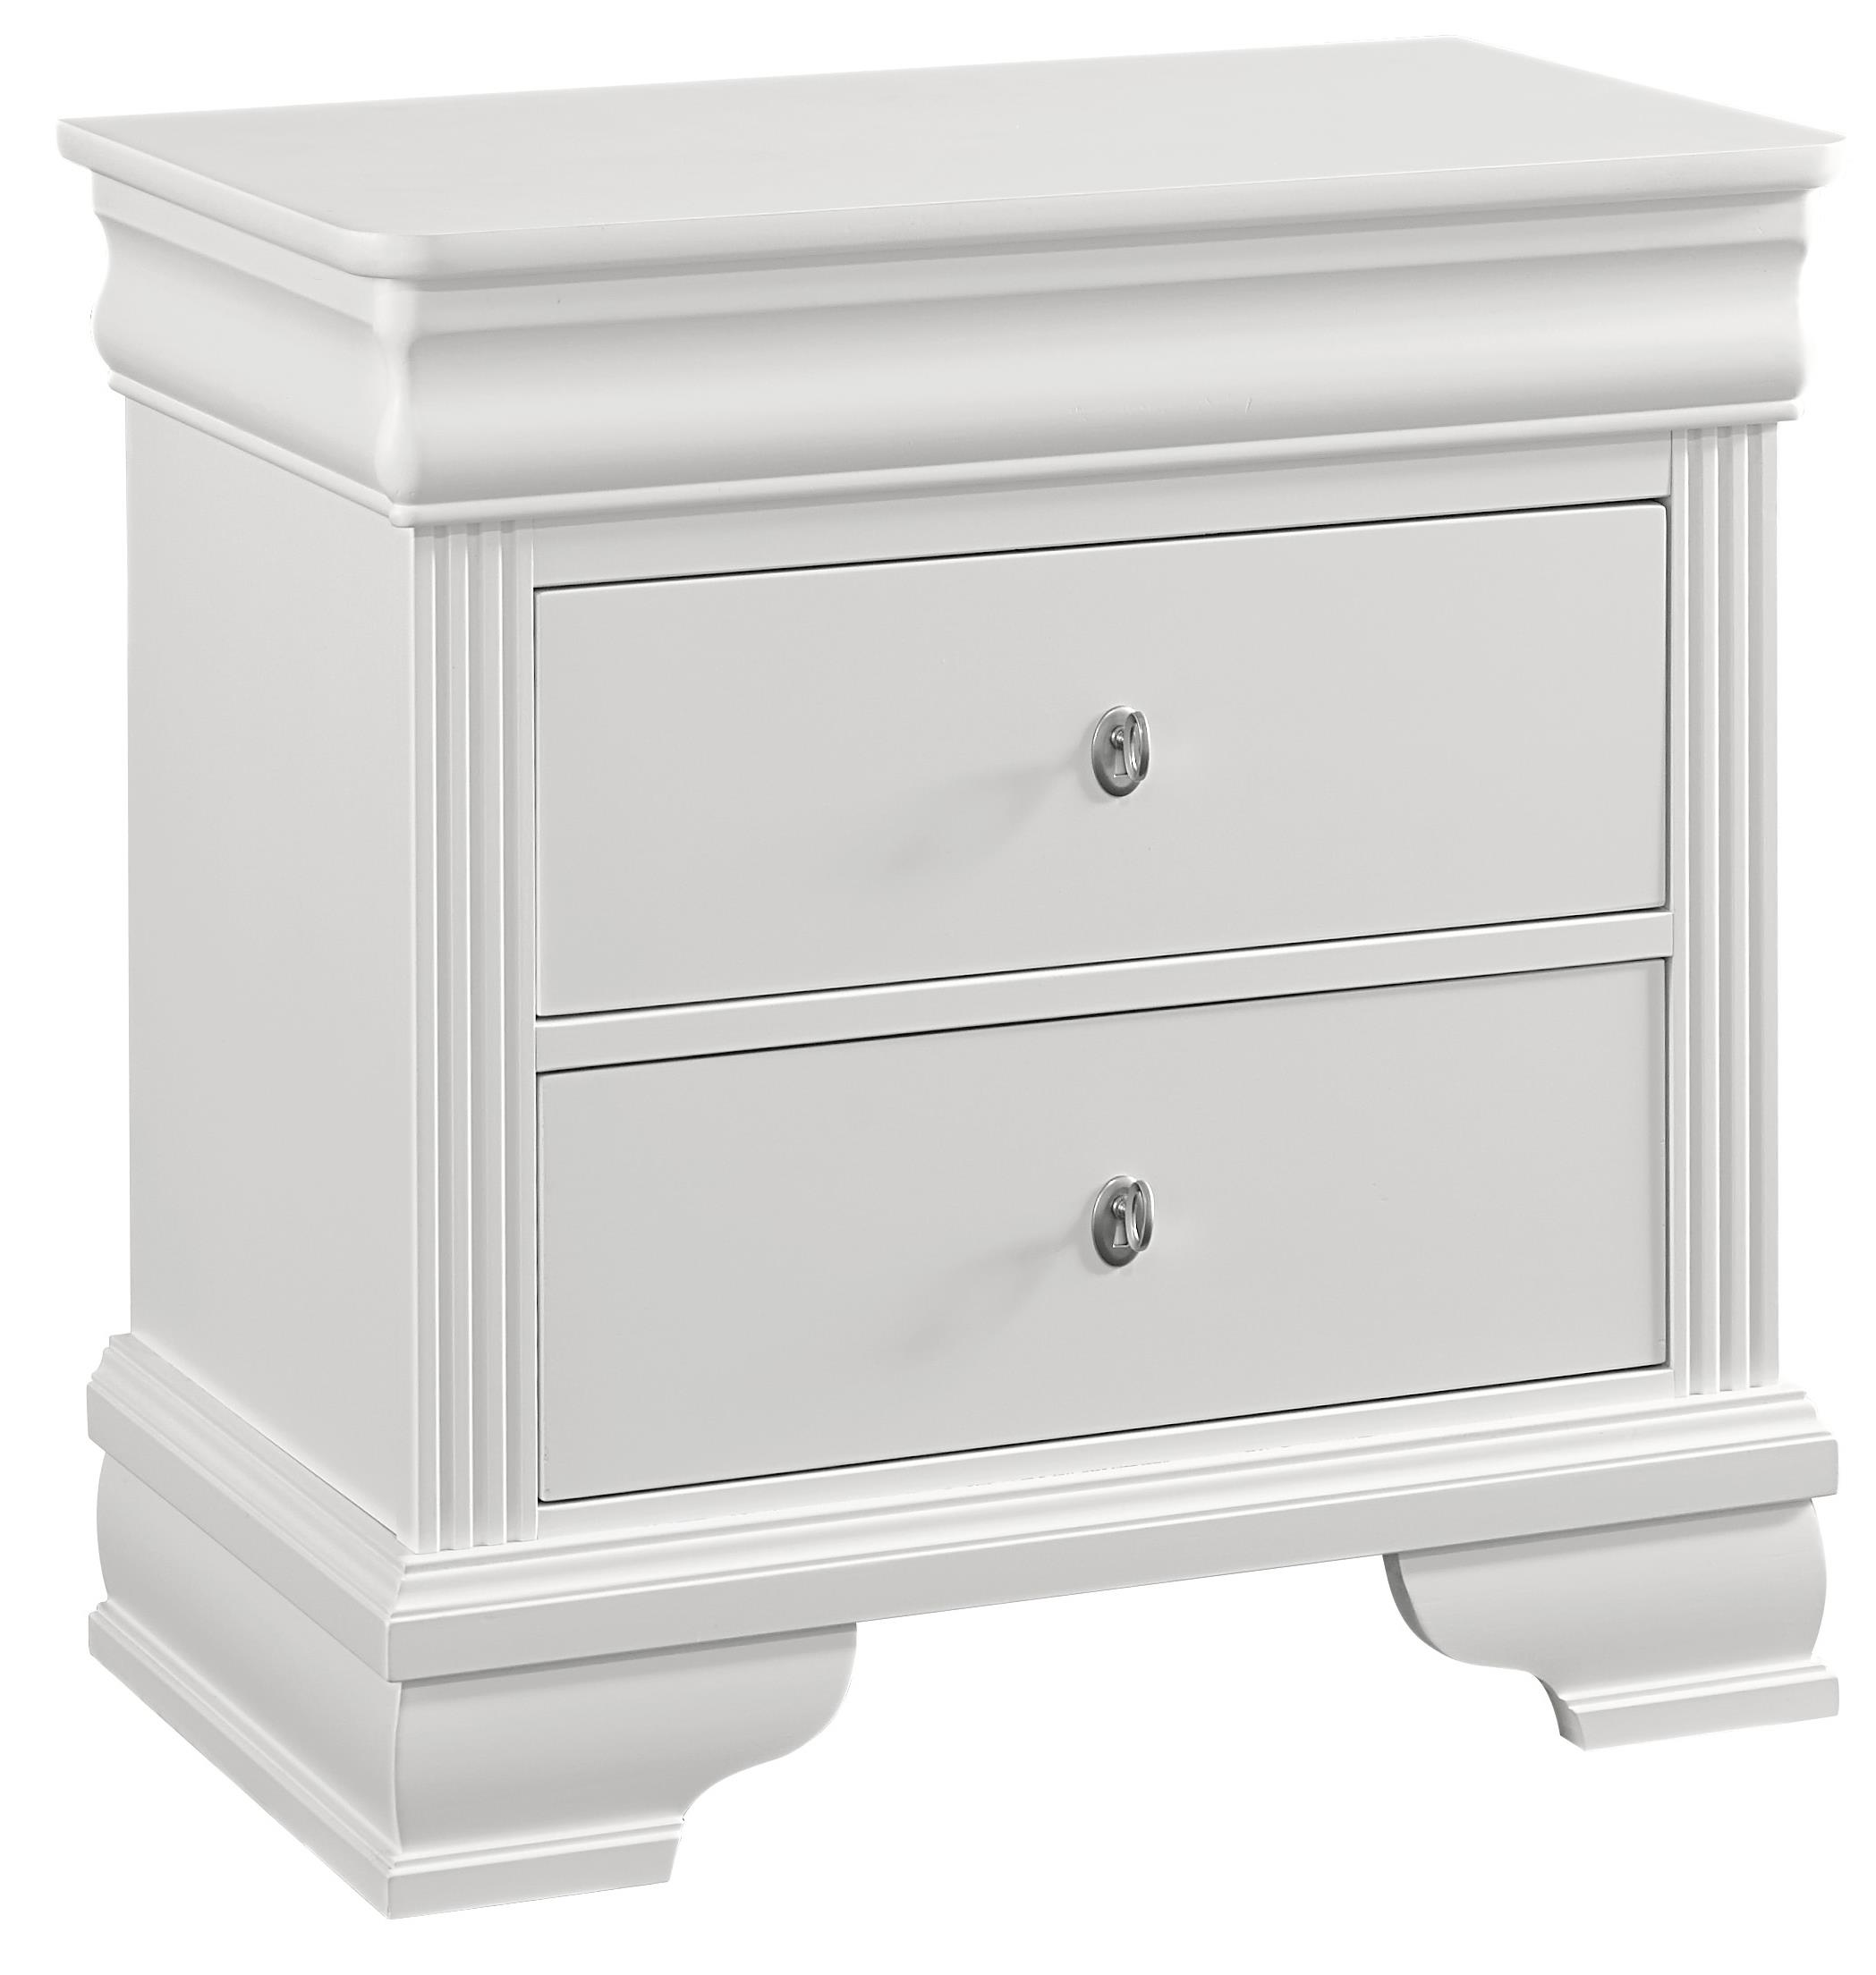 Vaughan Bassett French Market Night Stand - 2 Drawers - Item Number: 384-226